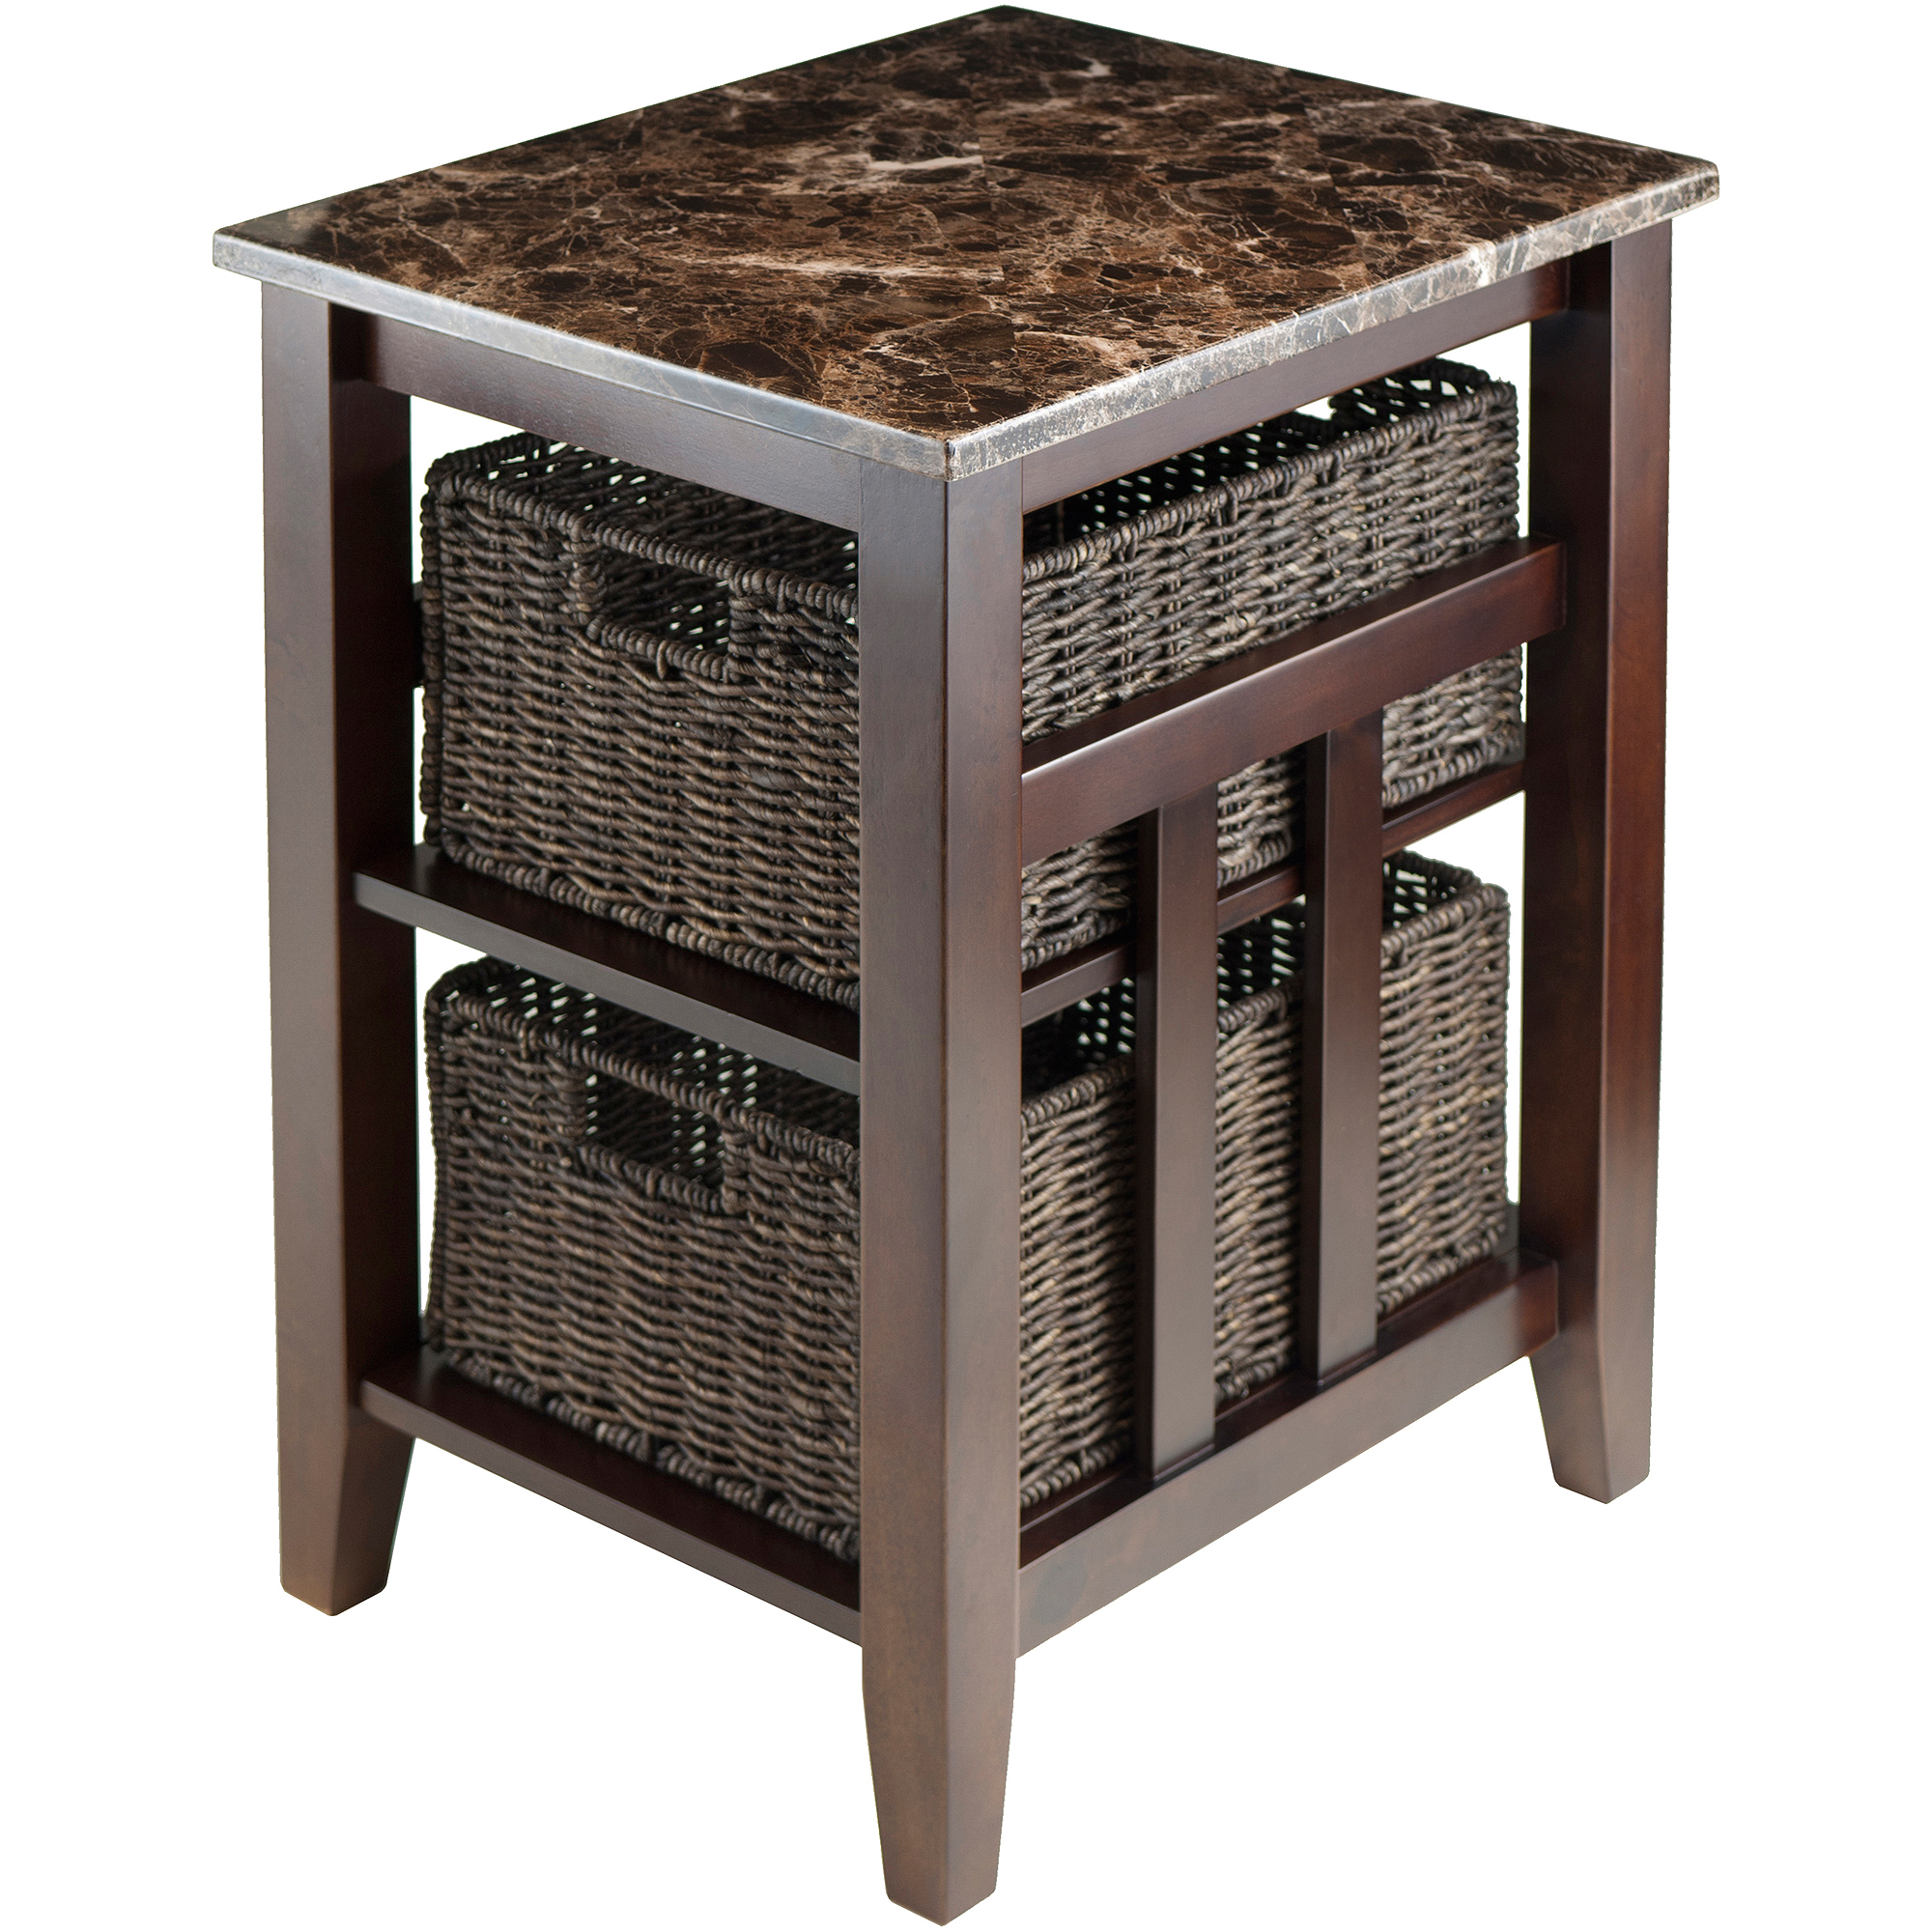 winsome wood zoey faux marble console table baskets walnut wicker storage accent pier dining sheesham furniture battery operated room light industrial end diy bar type woven metal